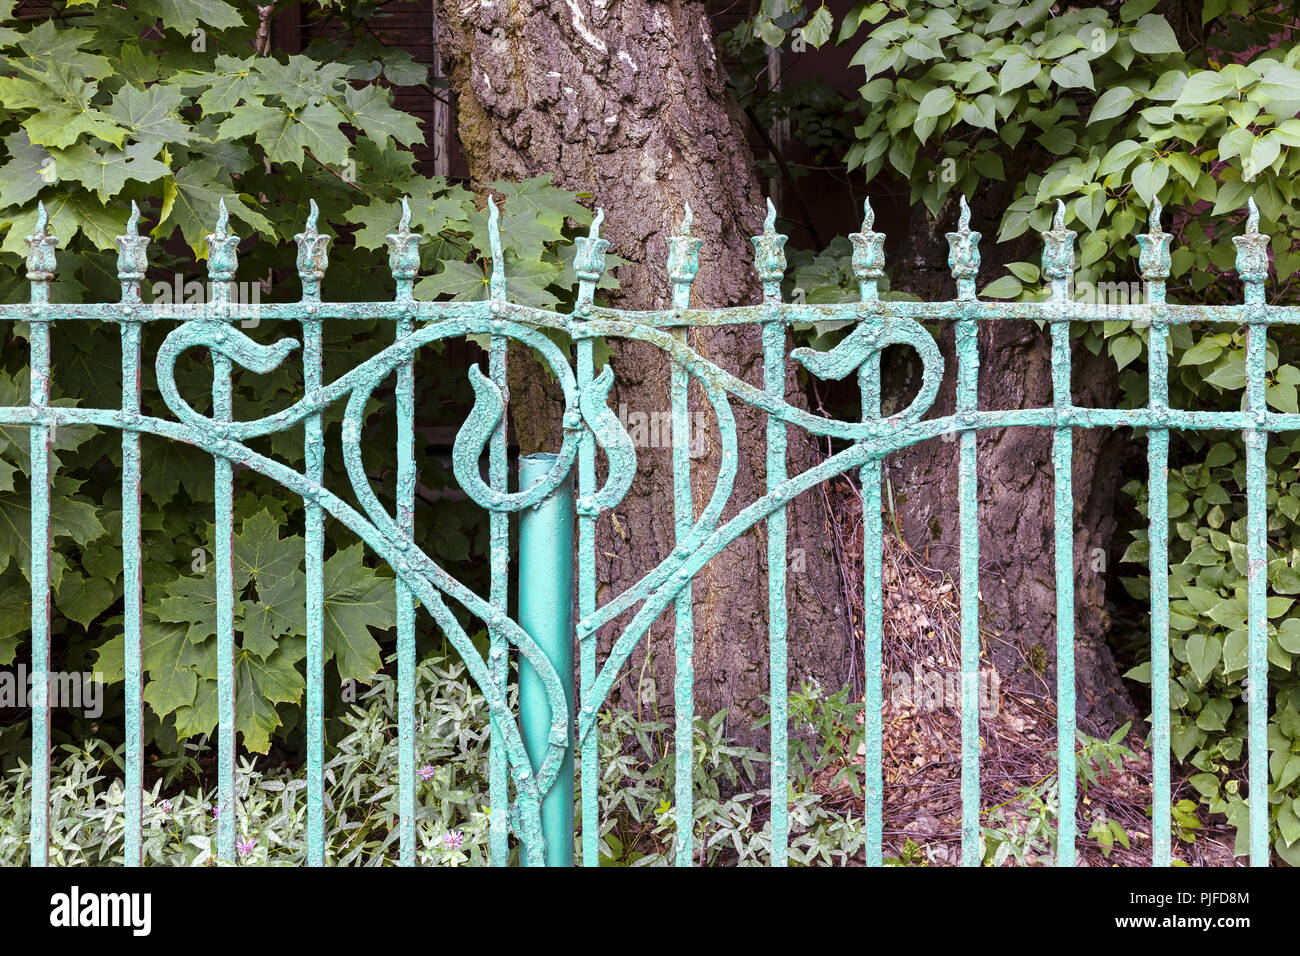 Old Metal Decorative Garden Fence Painted Blue With Paint Peeling Off